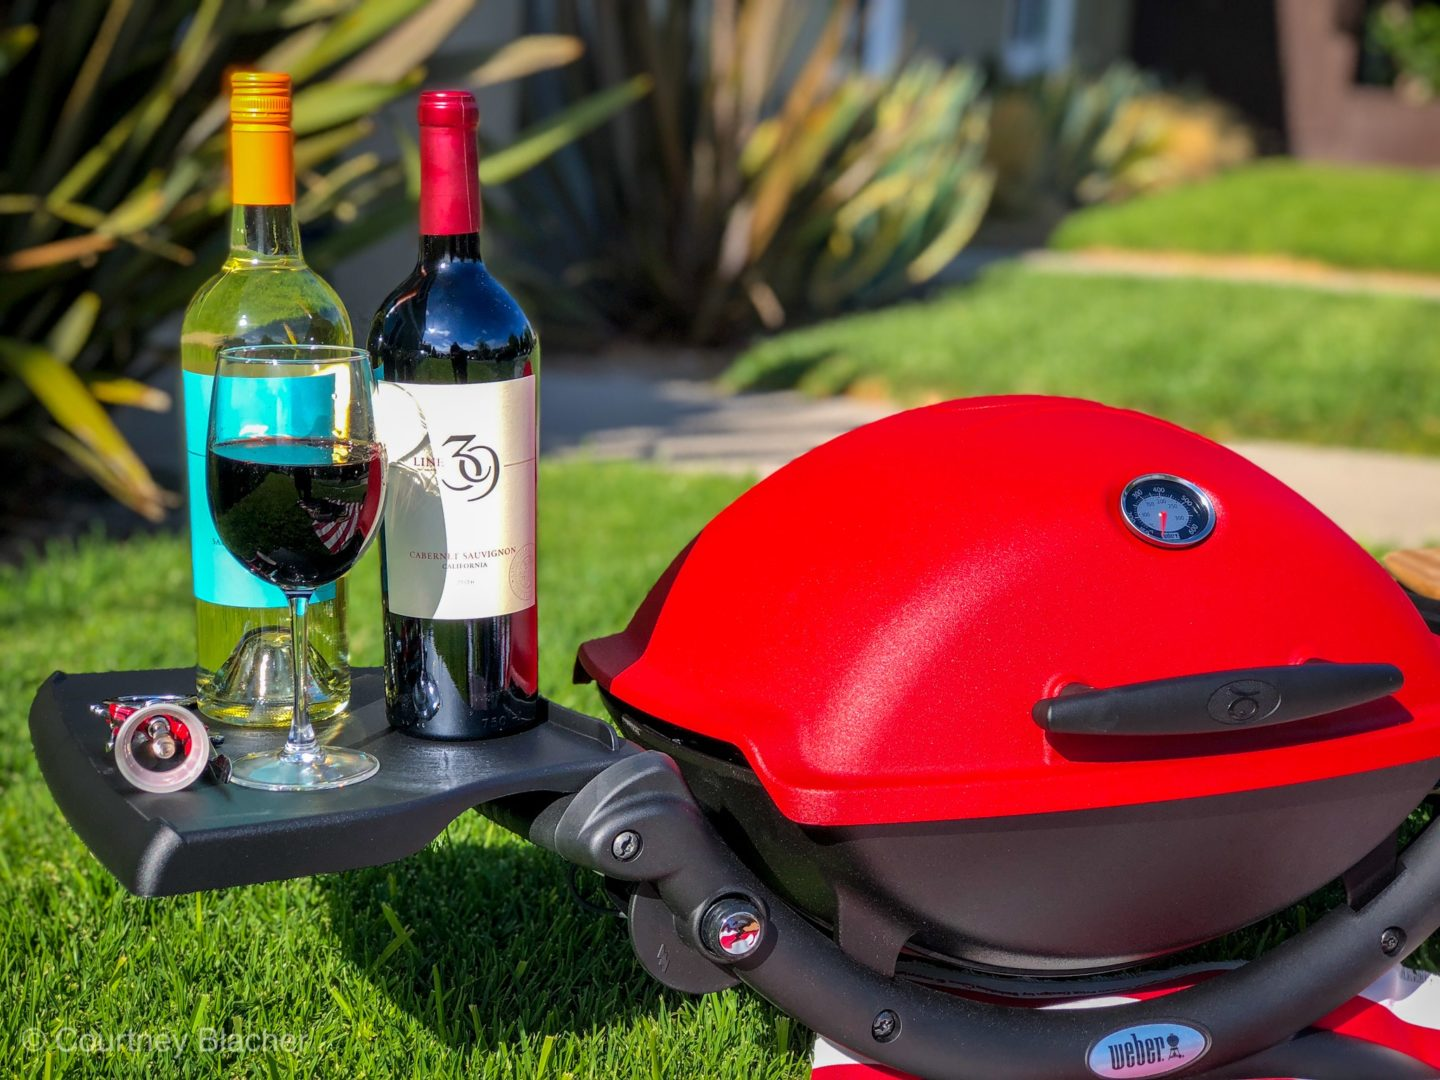 Must Have Summer Essentials Featuring Line 39 + Weber Grills